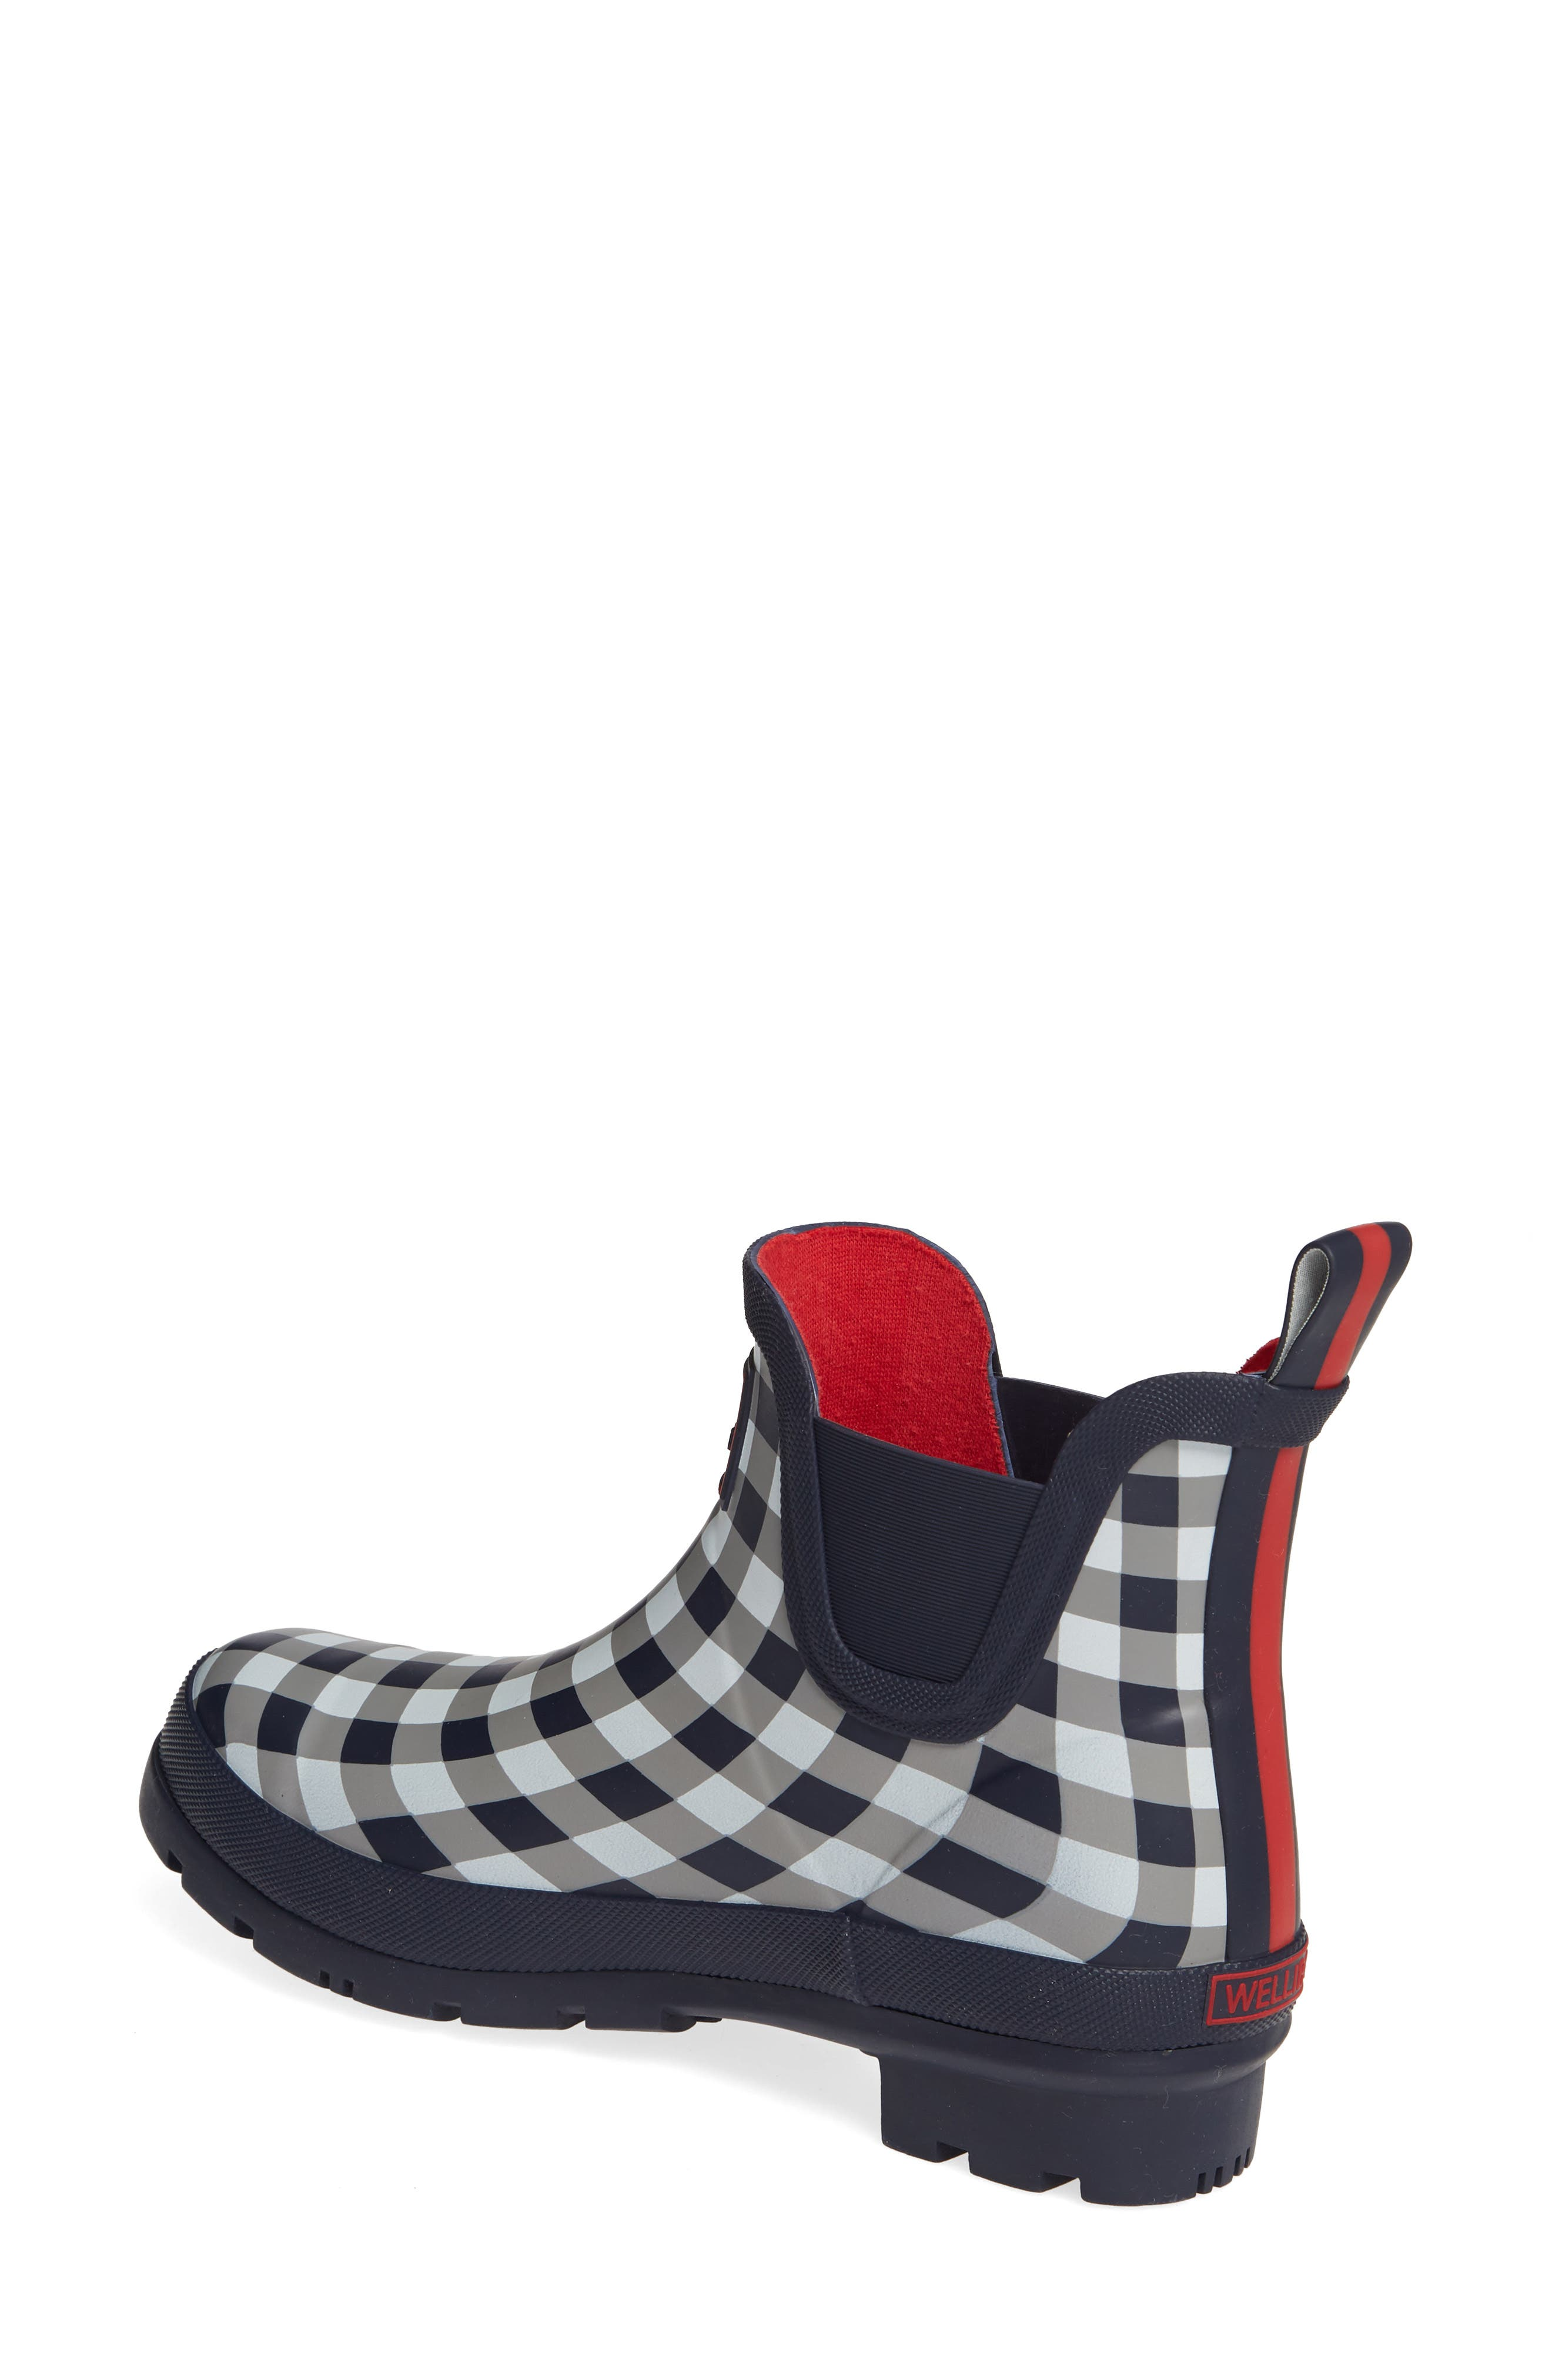 3ae89221f239 Women s Chelsea Boots